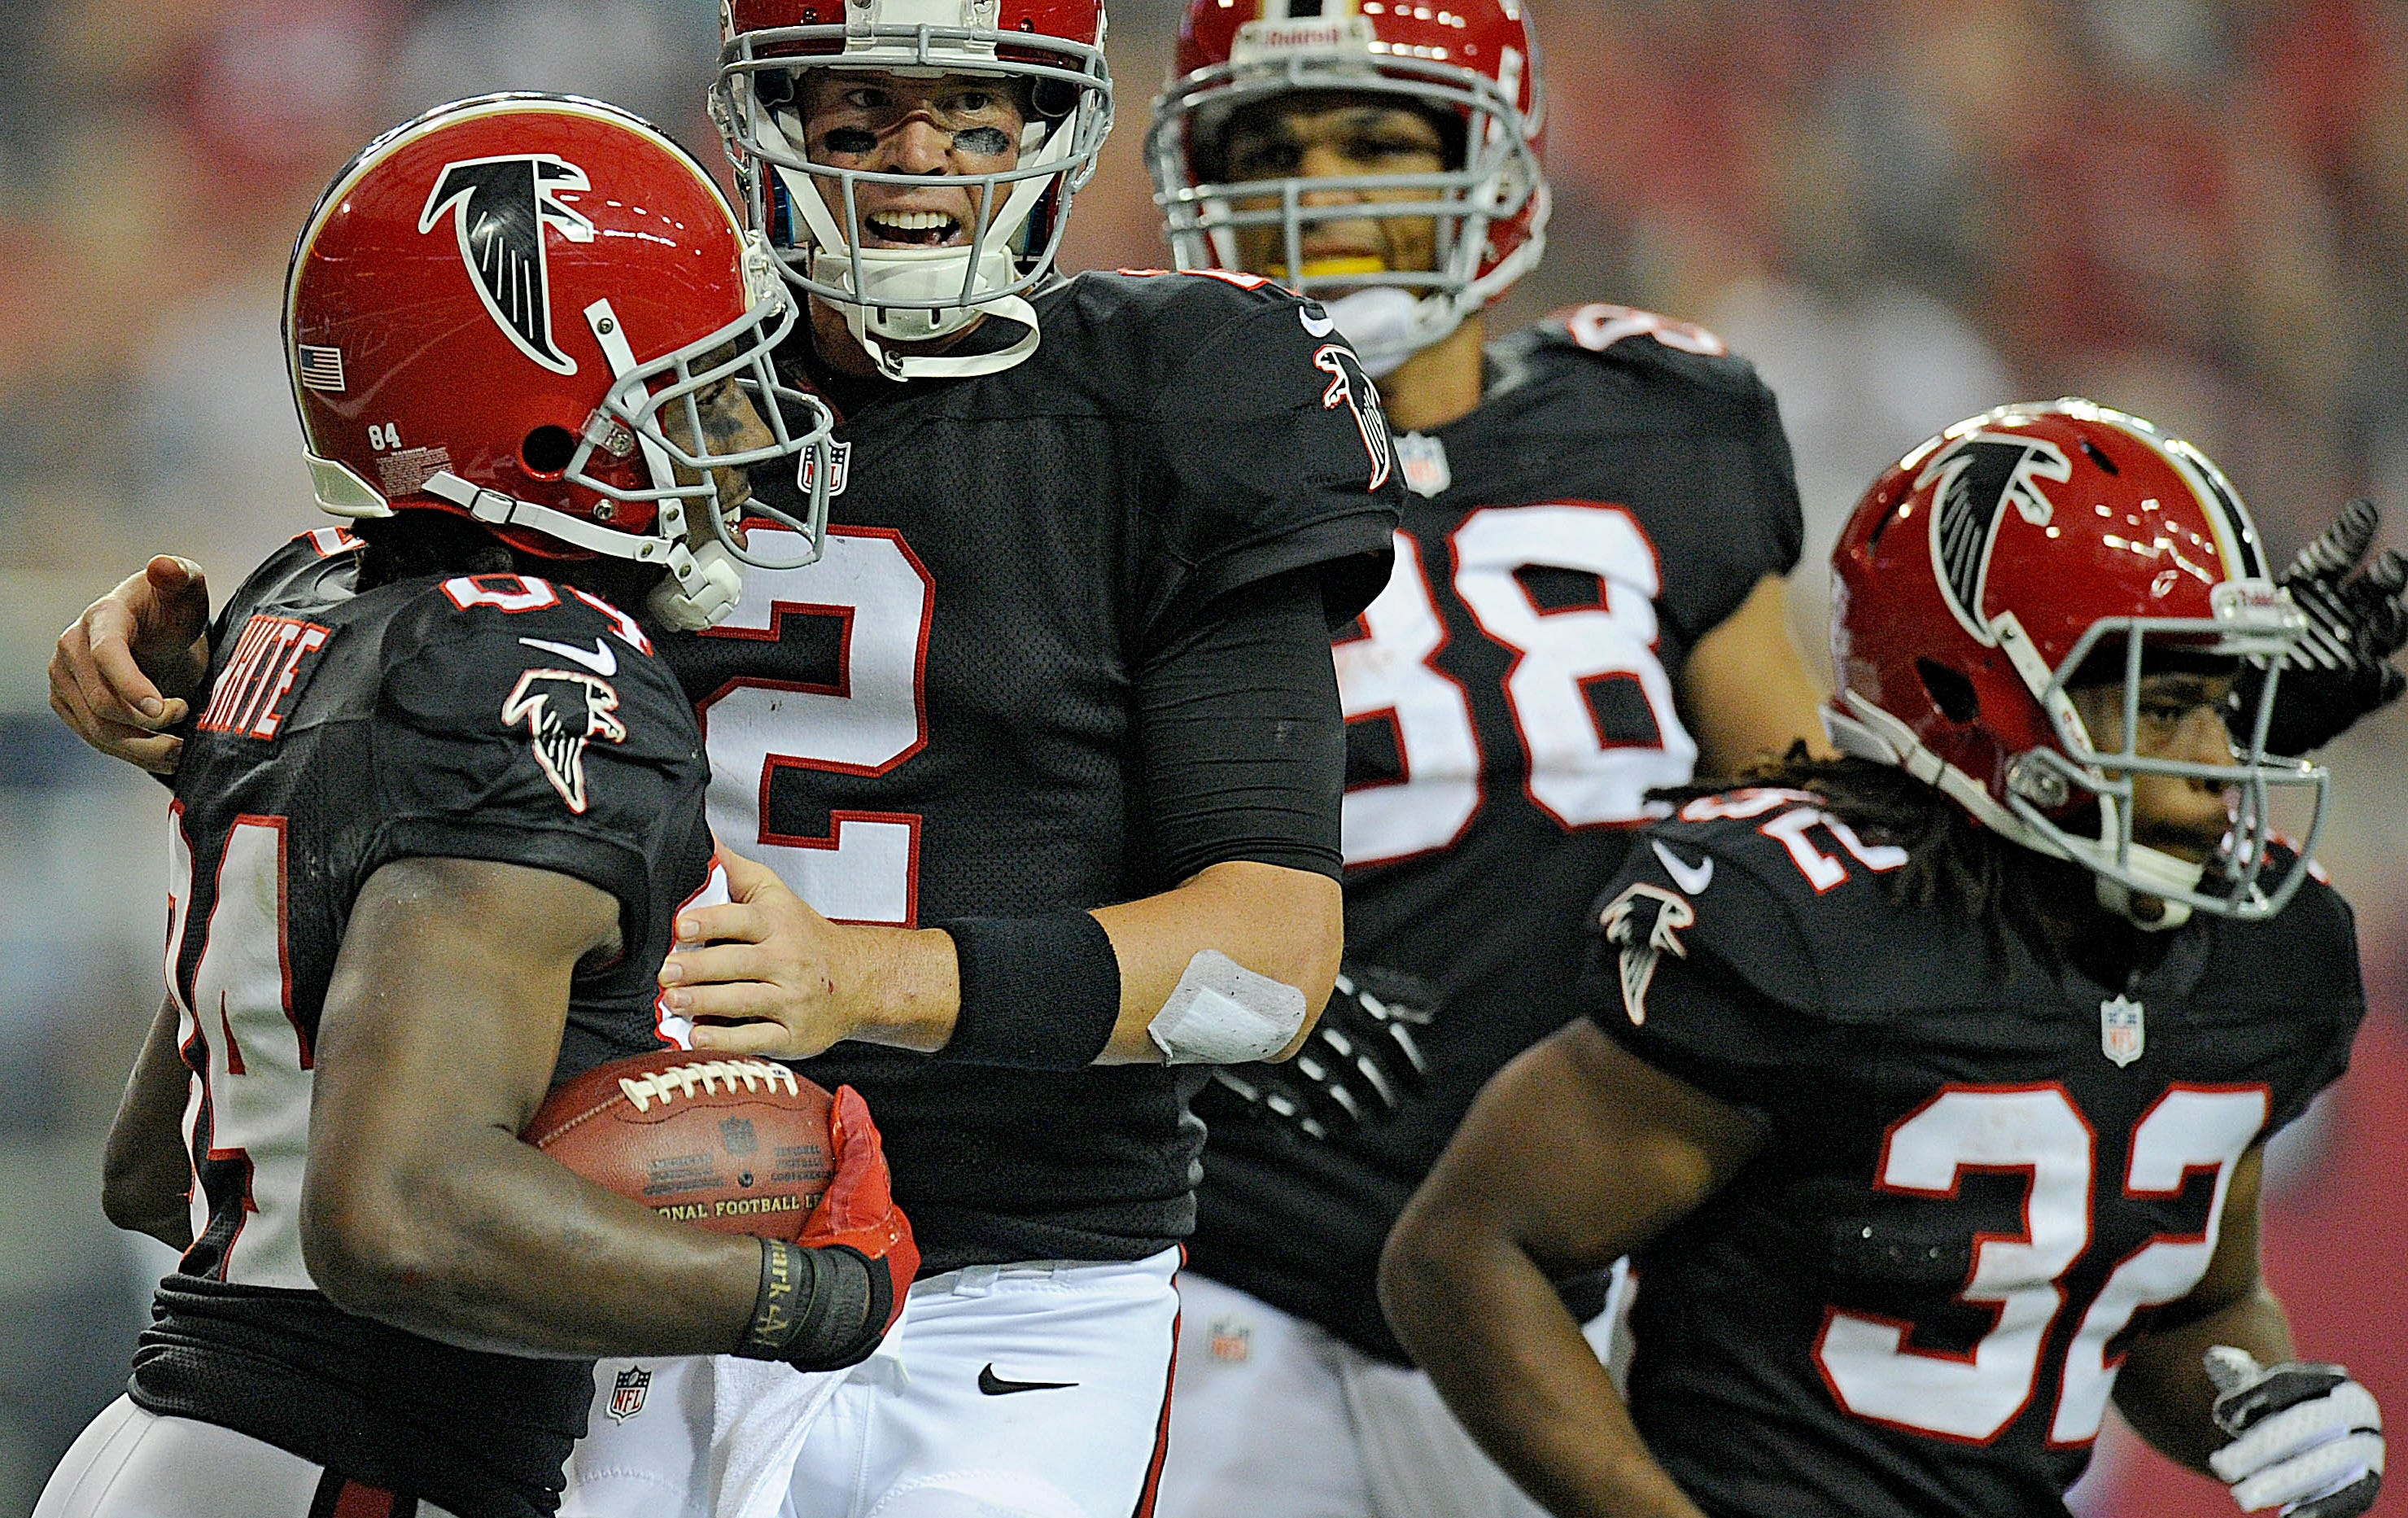 The Falcons wear throwbacks for a game in 2011.